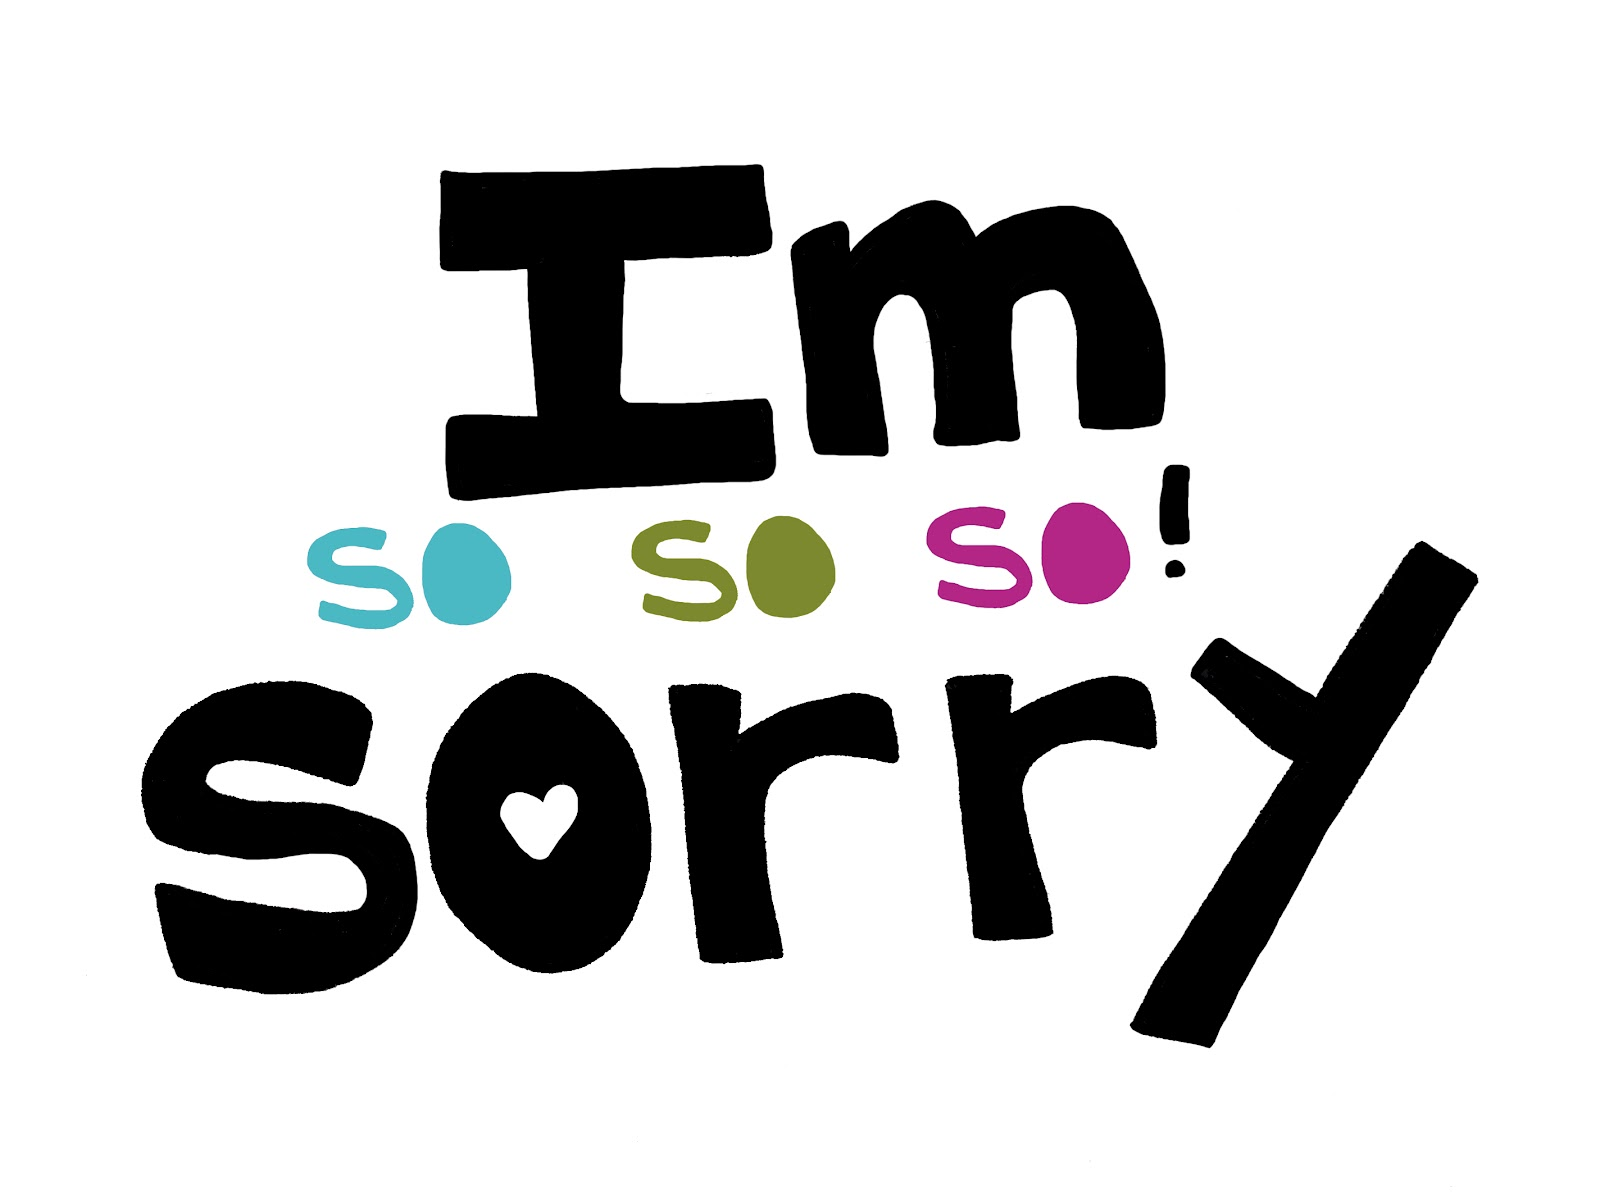 Free download sorry wallpapers for friend [1600x1204] for your